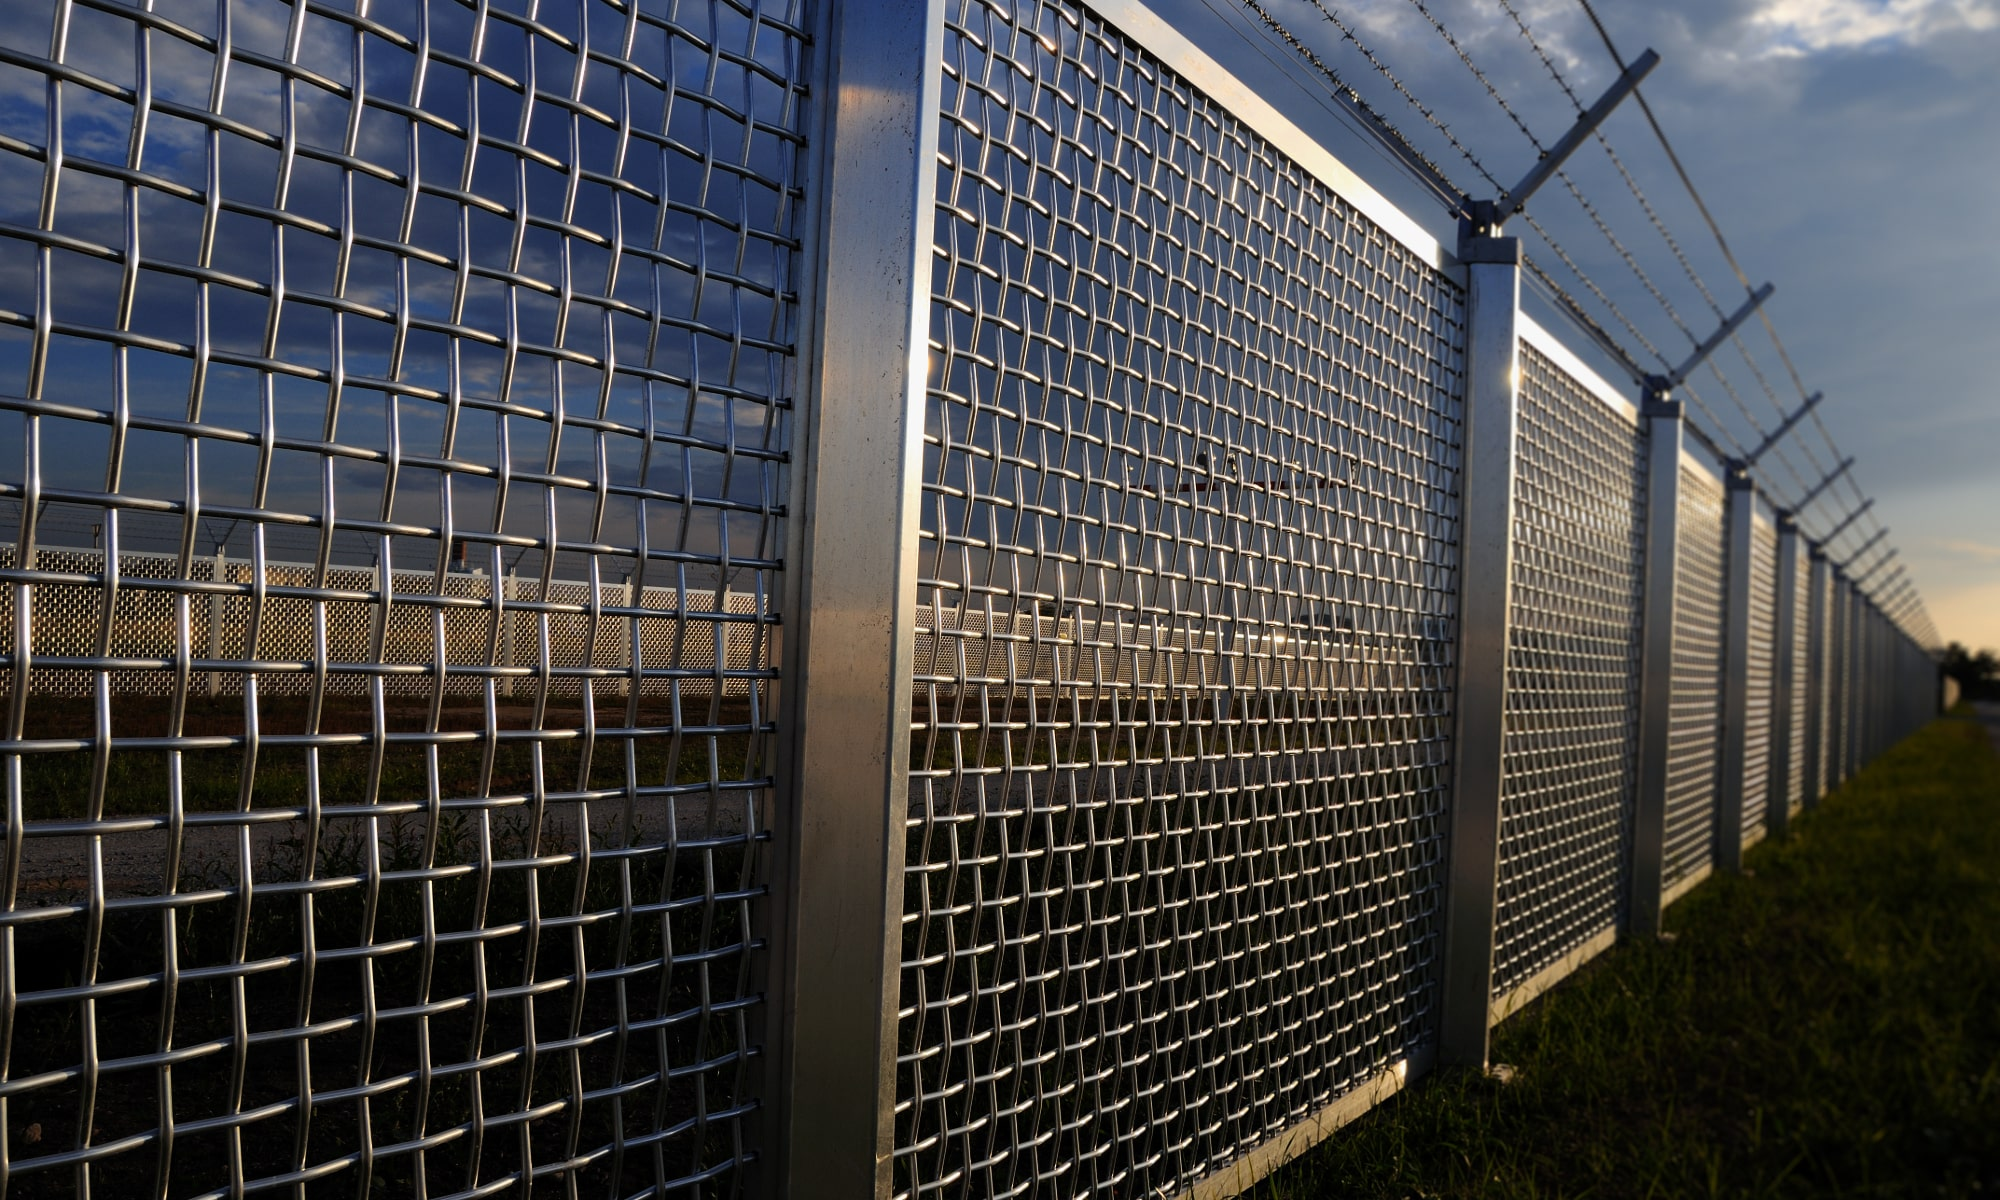 Protect Your Business: 4 Key Advantages of Security Fencing